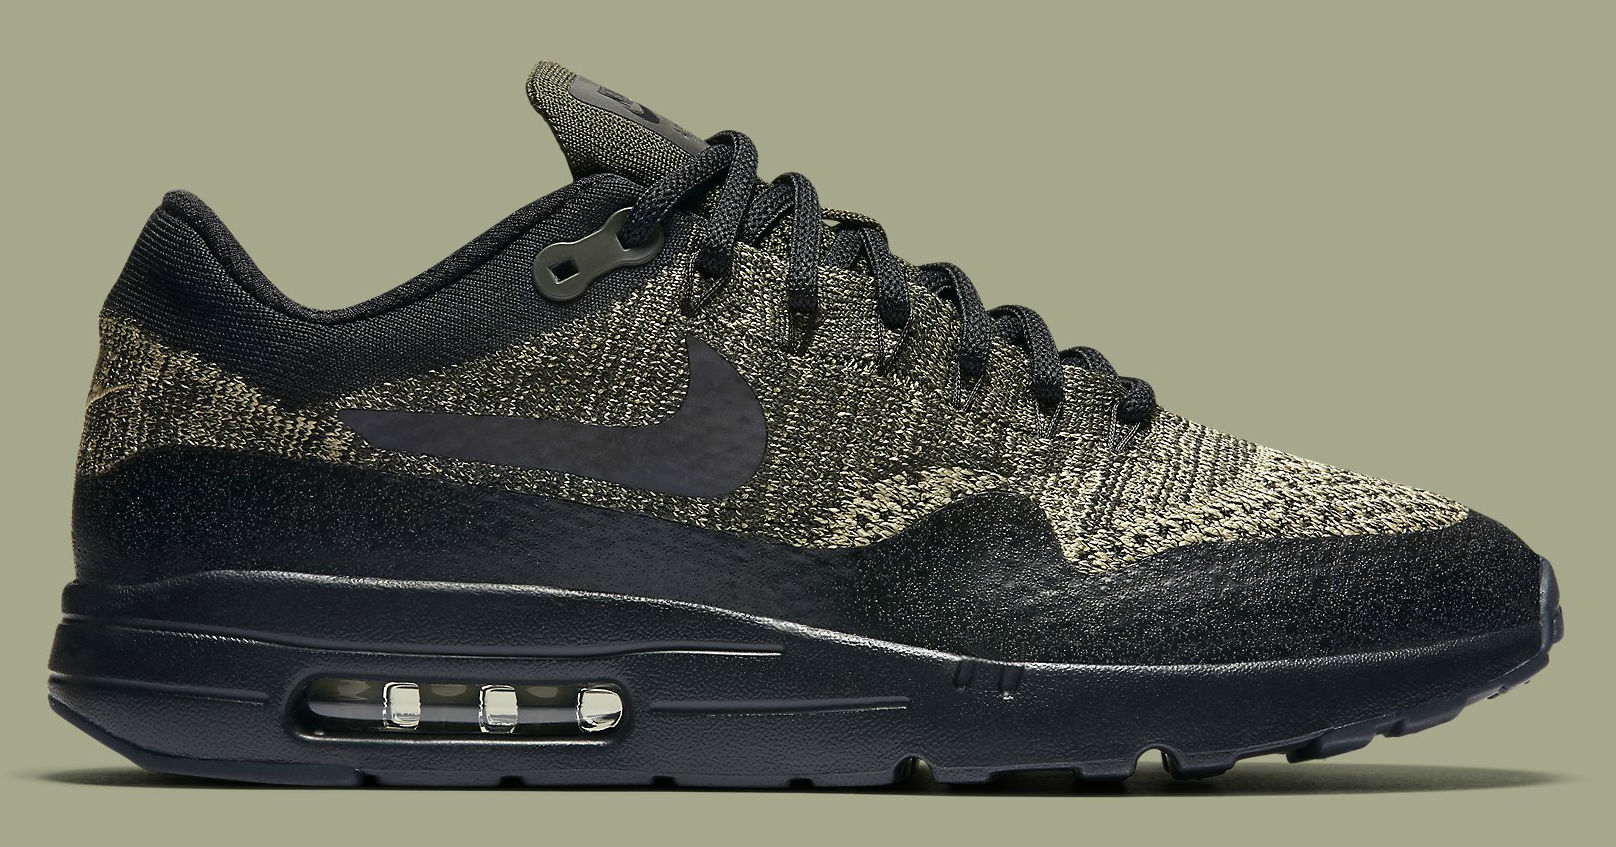 sale retailer 9e3db e9463 Nike Air Max 1 Ultra Flyknit Neutral Olive Black-Sequoia Side 856958-203